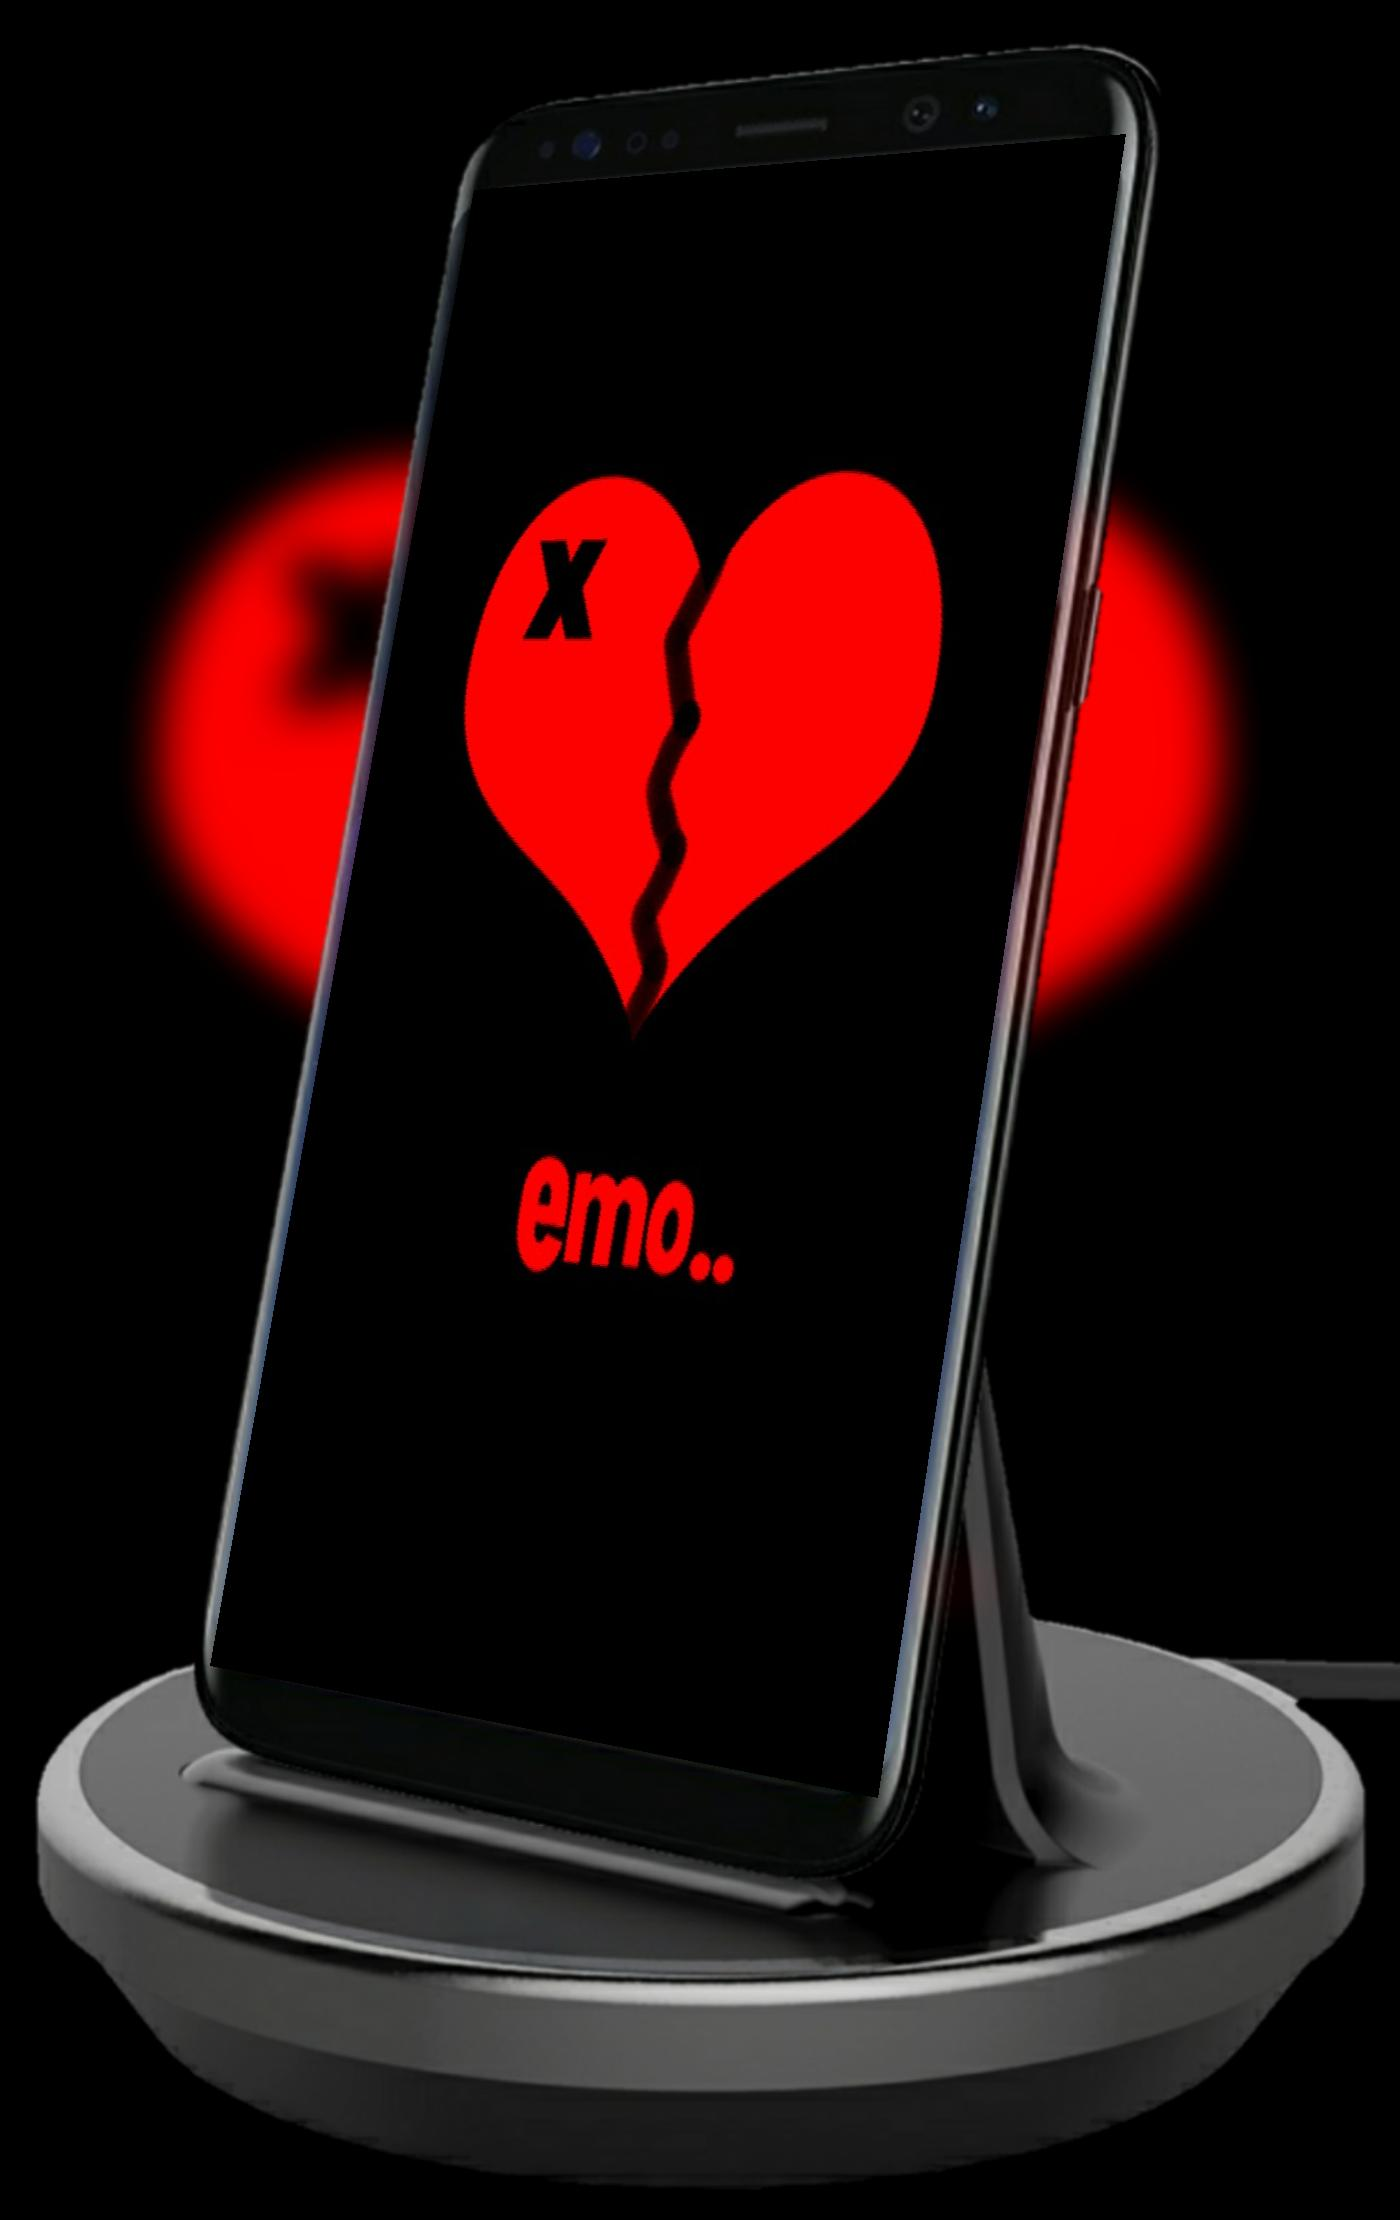 Emo Wallpaper For Android Apk Download